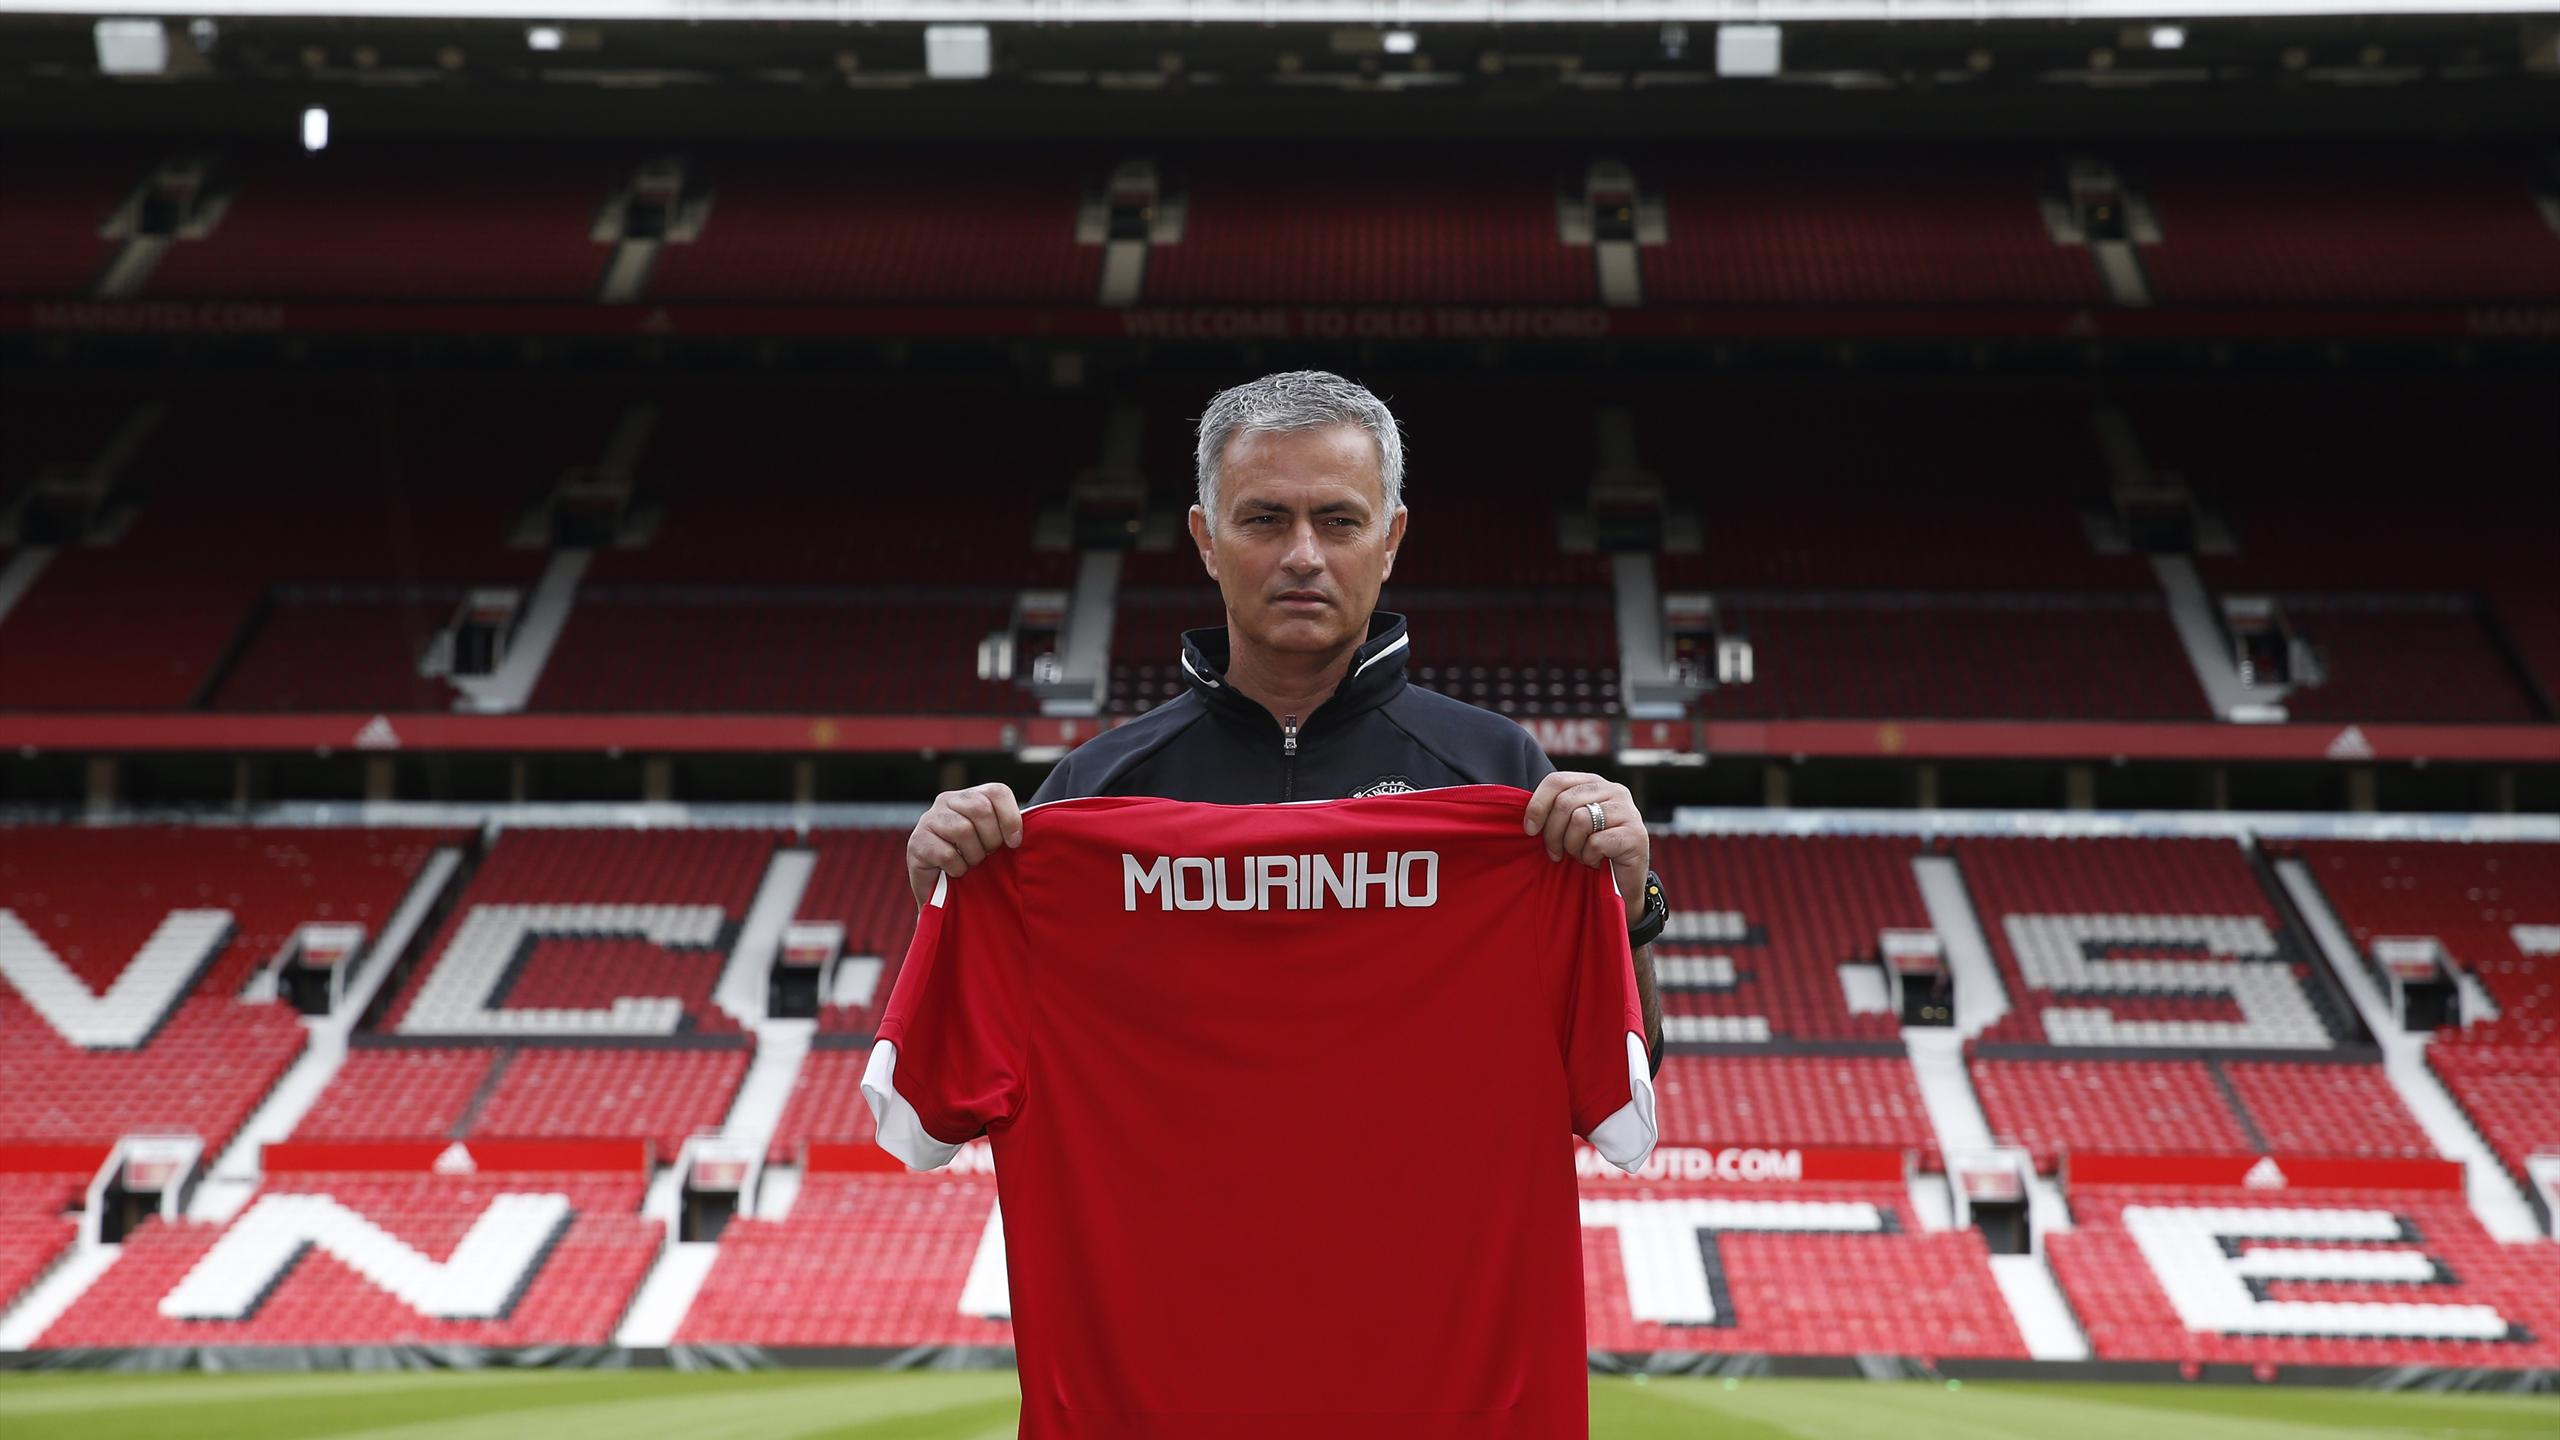 New Manchester United manager Jose Mourinho poses ahead of the press conference